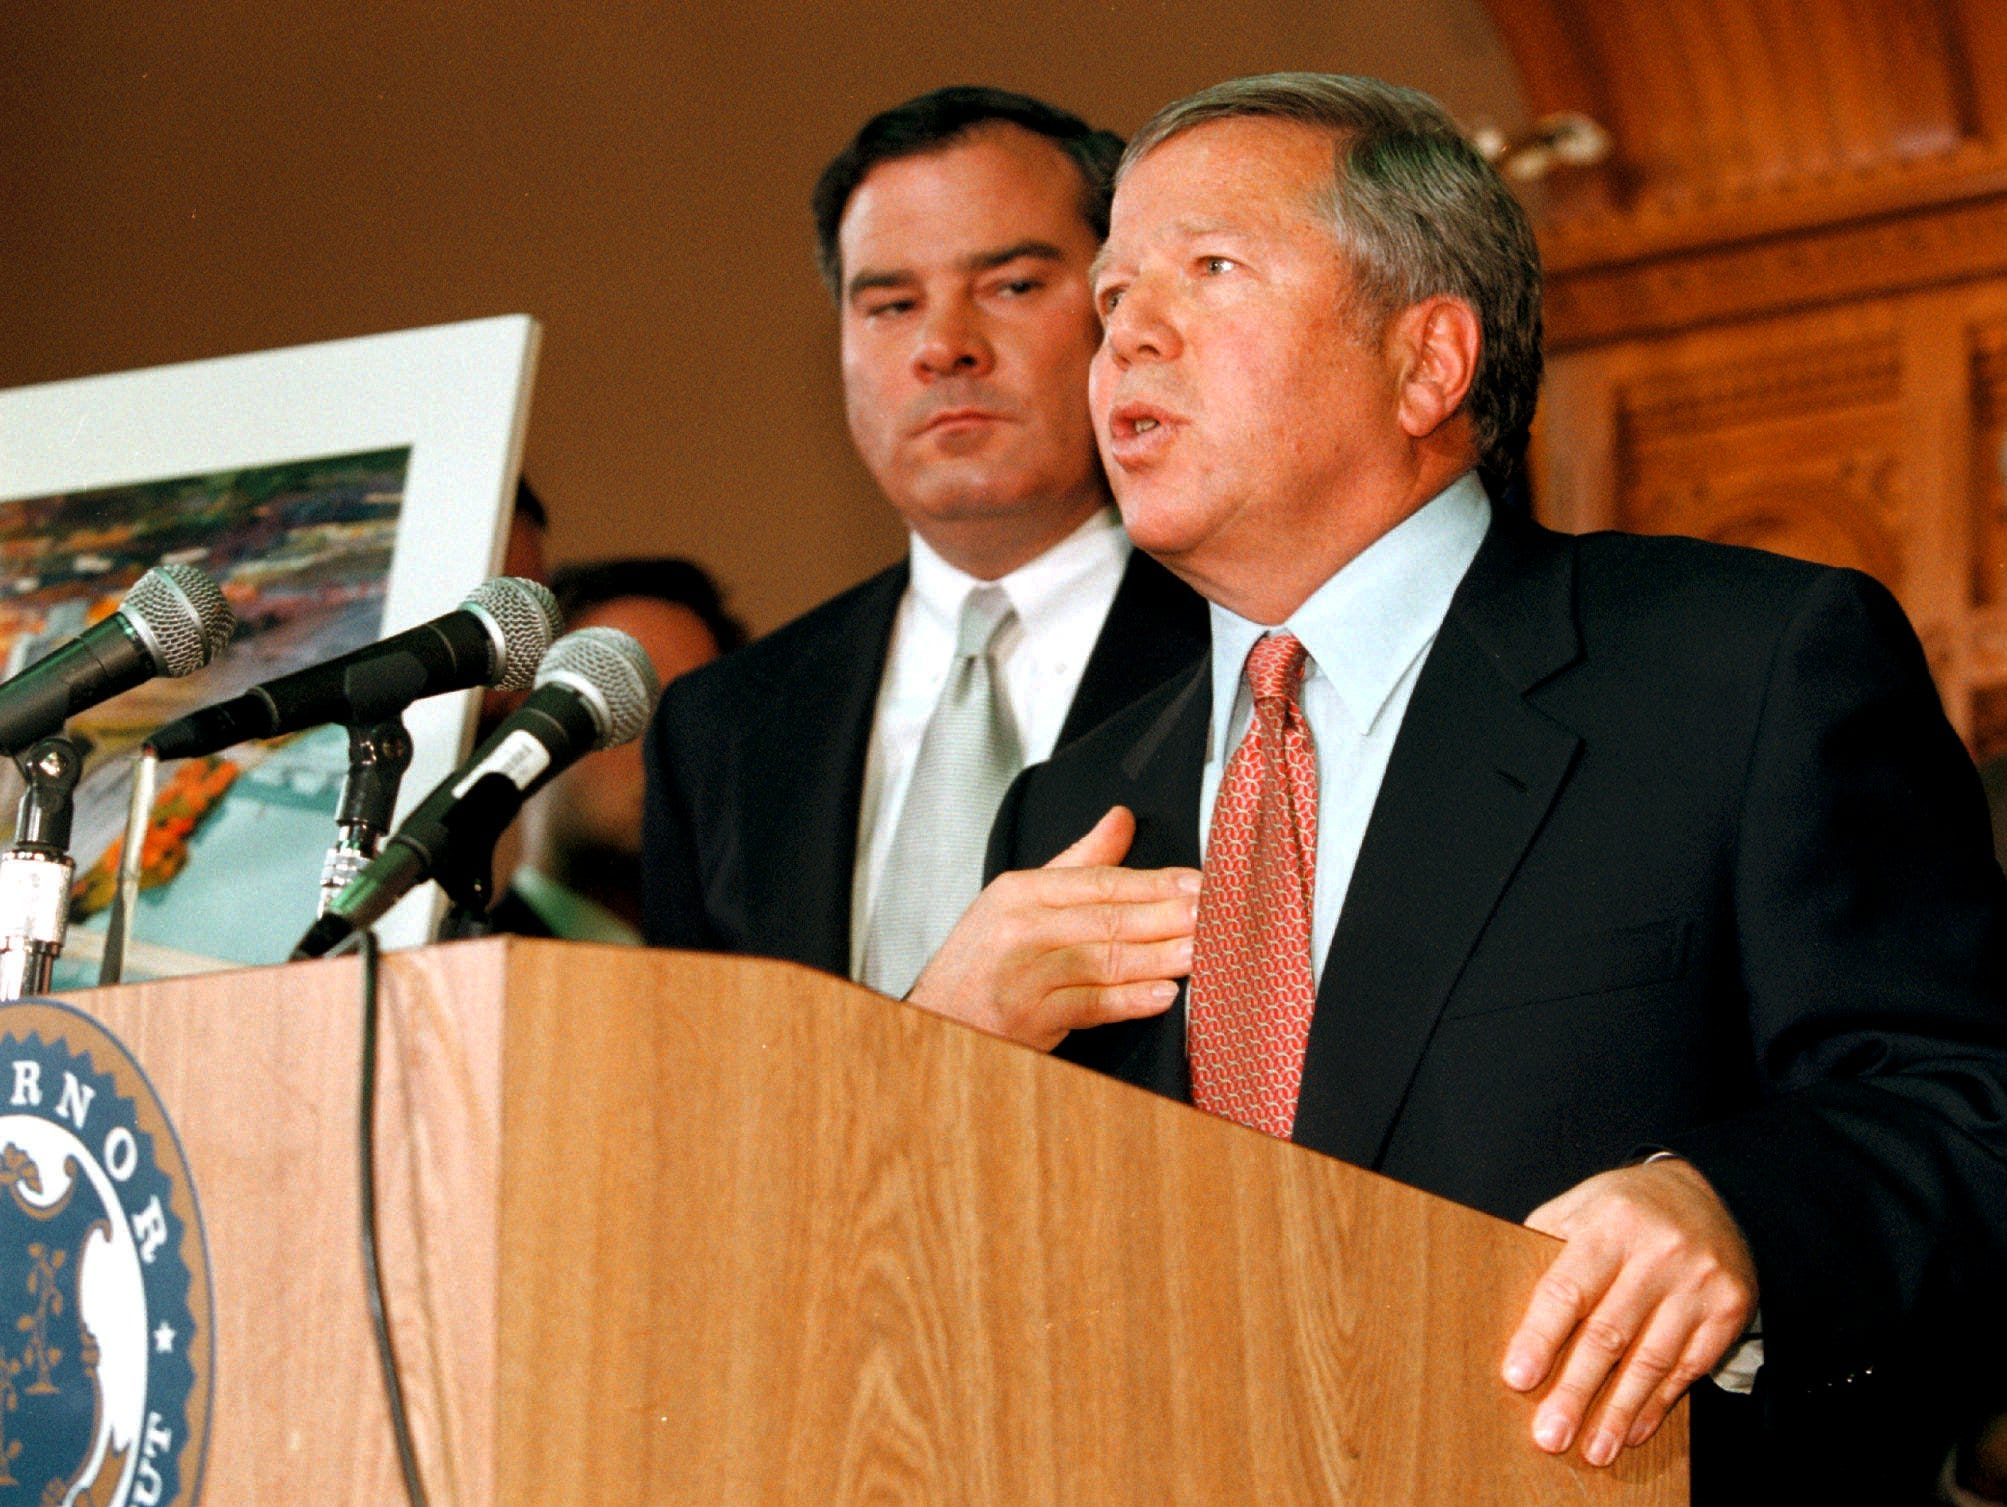 Kraft speaks as Governor of Connecticut John Rowland looks on during the announcement of the NFL football team moving to the city of Hartford at the State Capitol building.